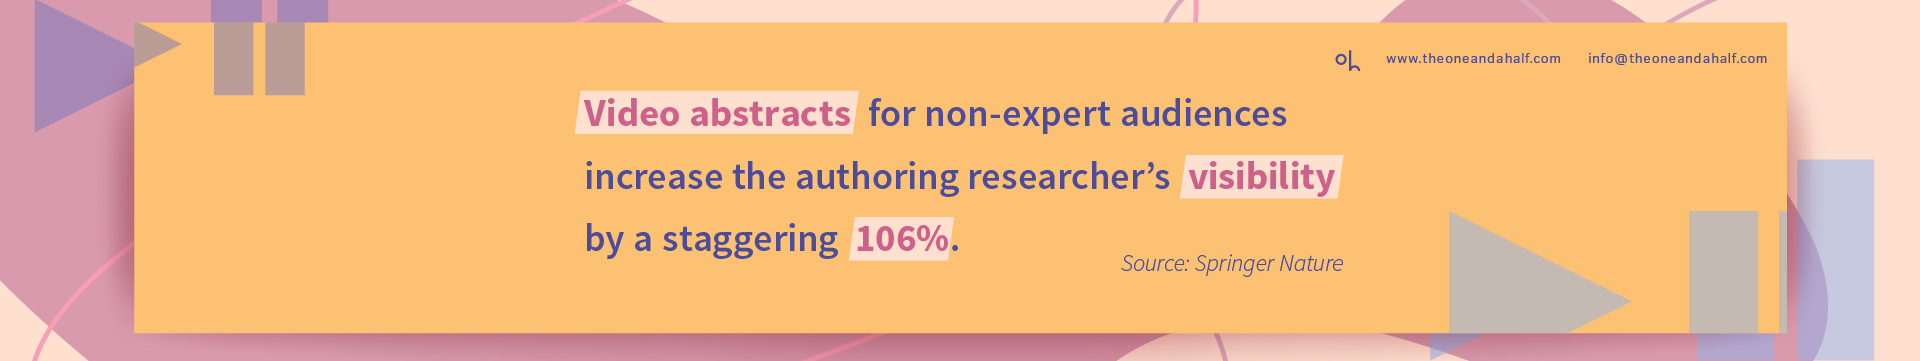 oh_one and a half_animation video abstracts increase authoring researchers visibility